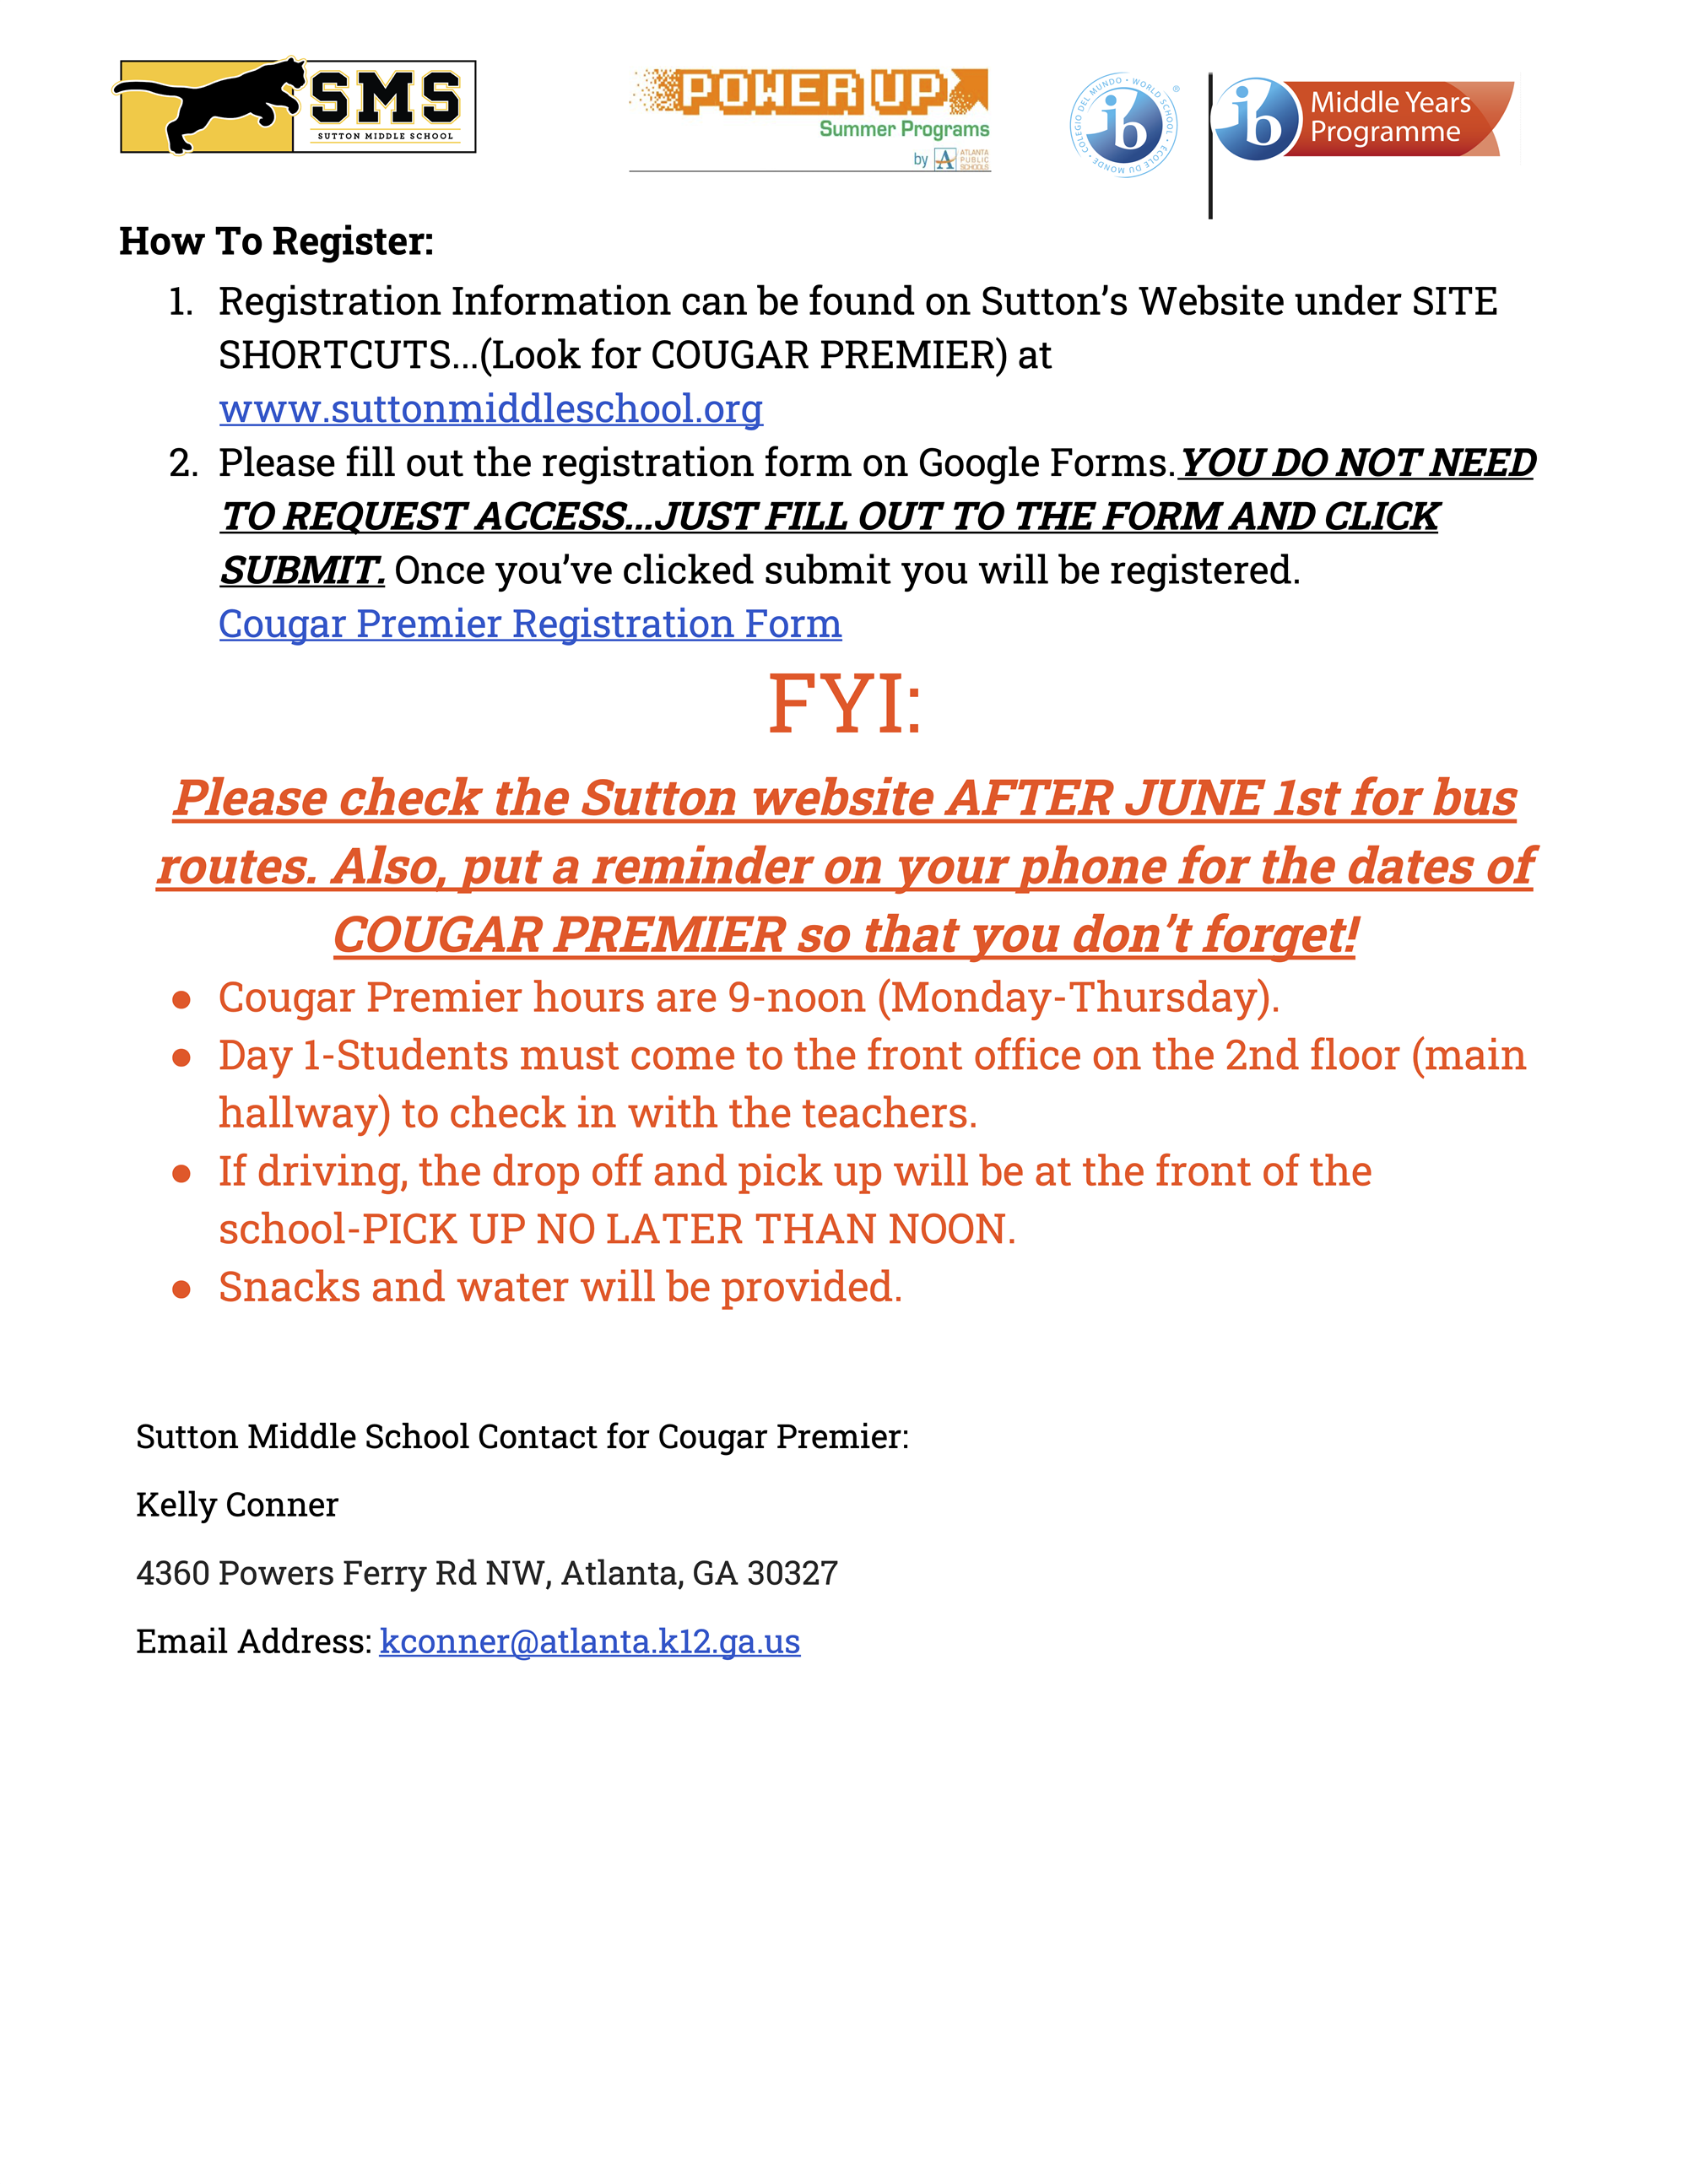 Sutton Cougar Premier Info Page 2 - contact main office for more info (404) 802-5650